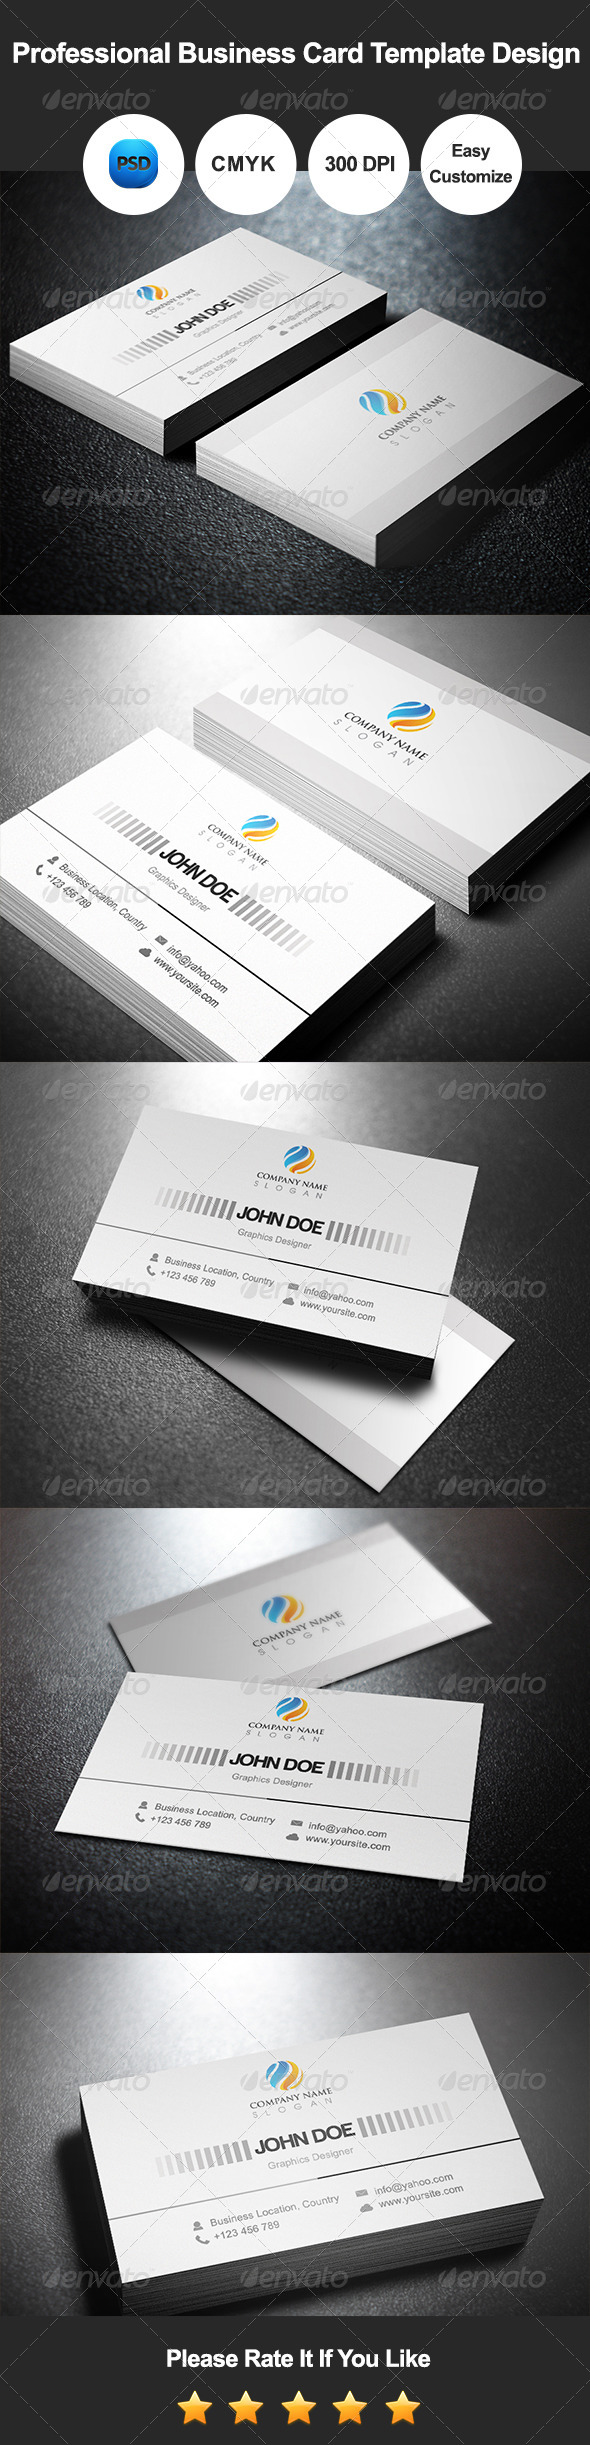 GraphicRiver Professional Business Card Template Design 7535042